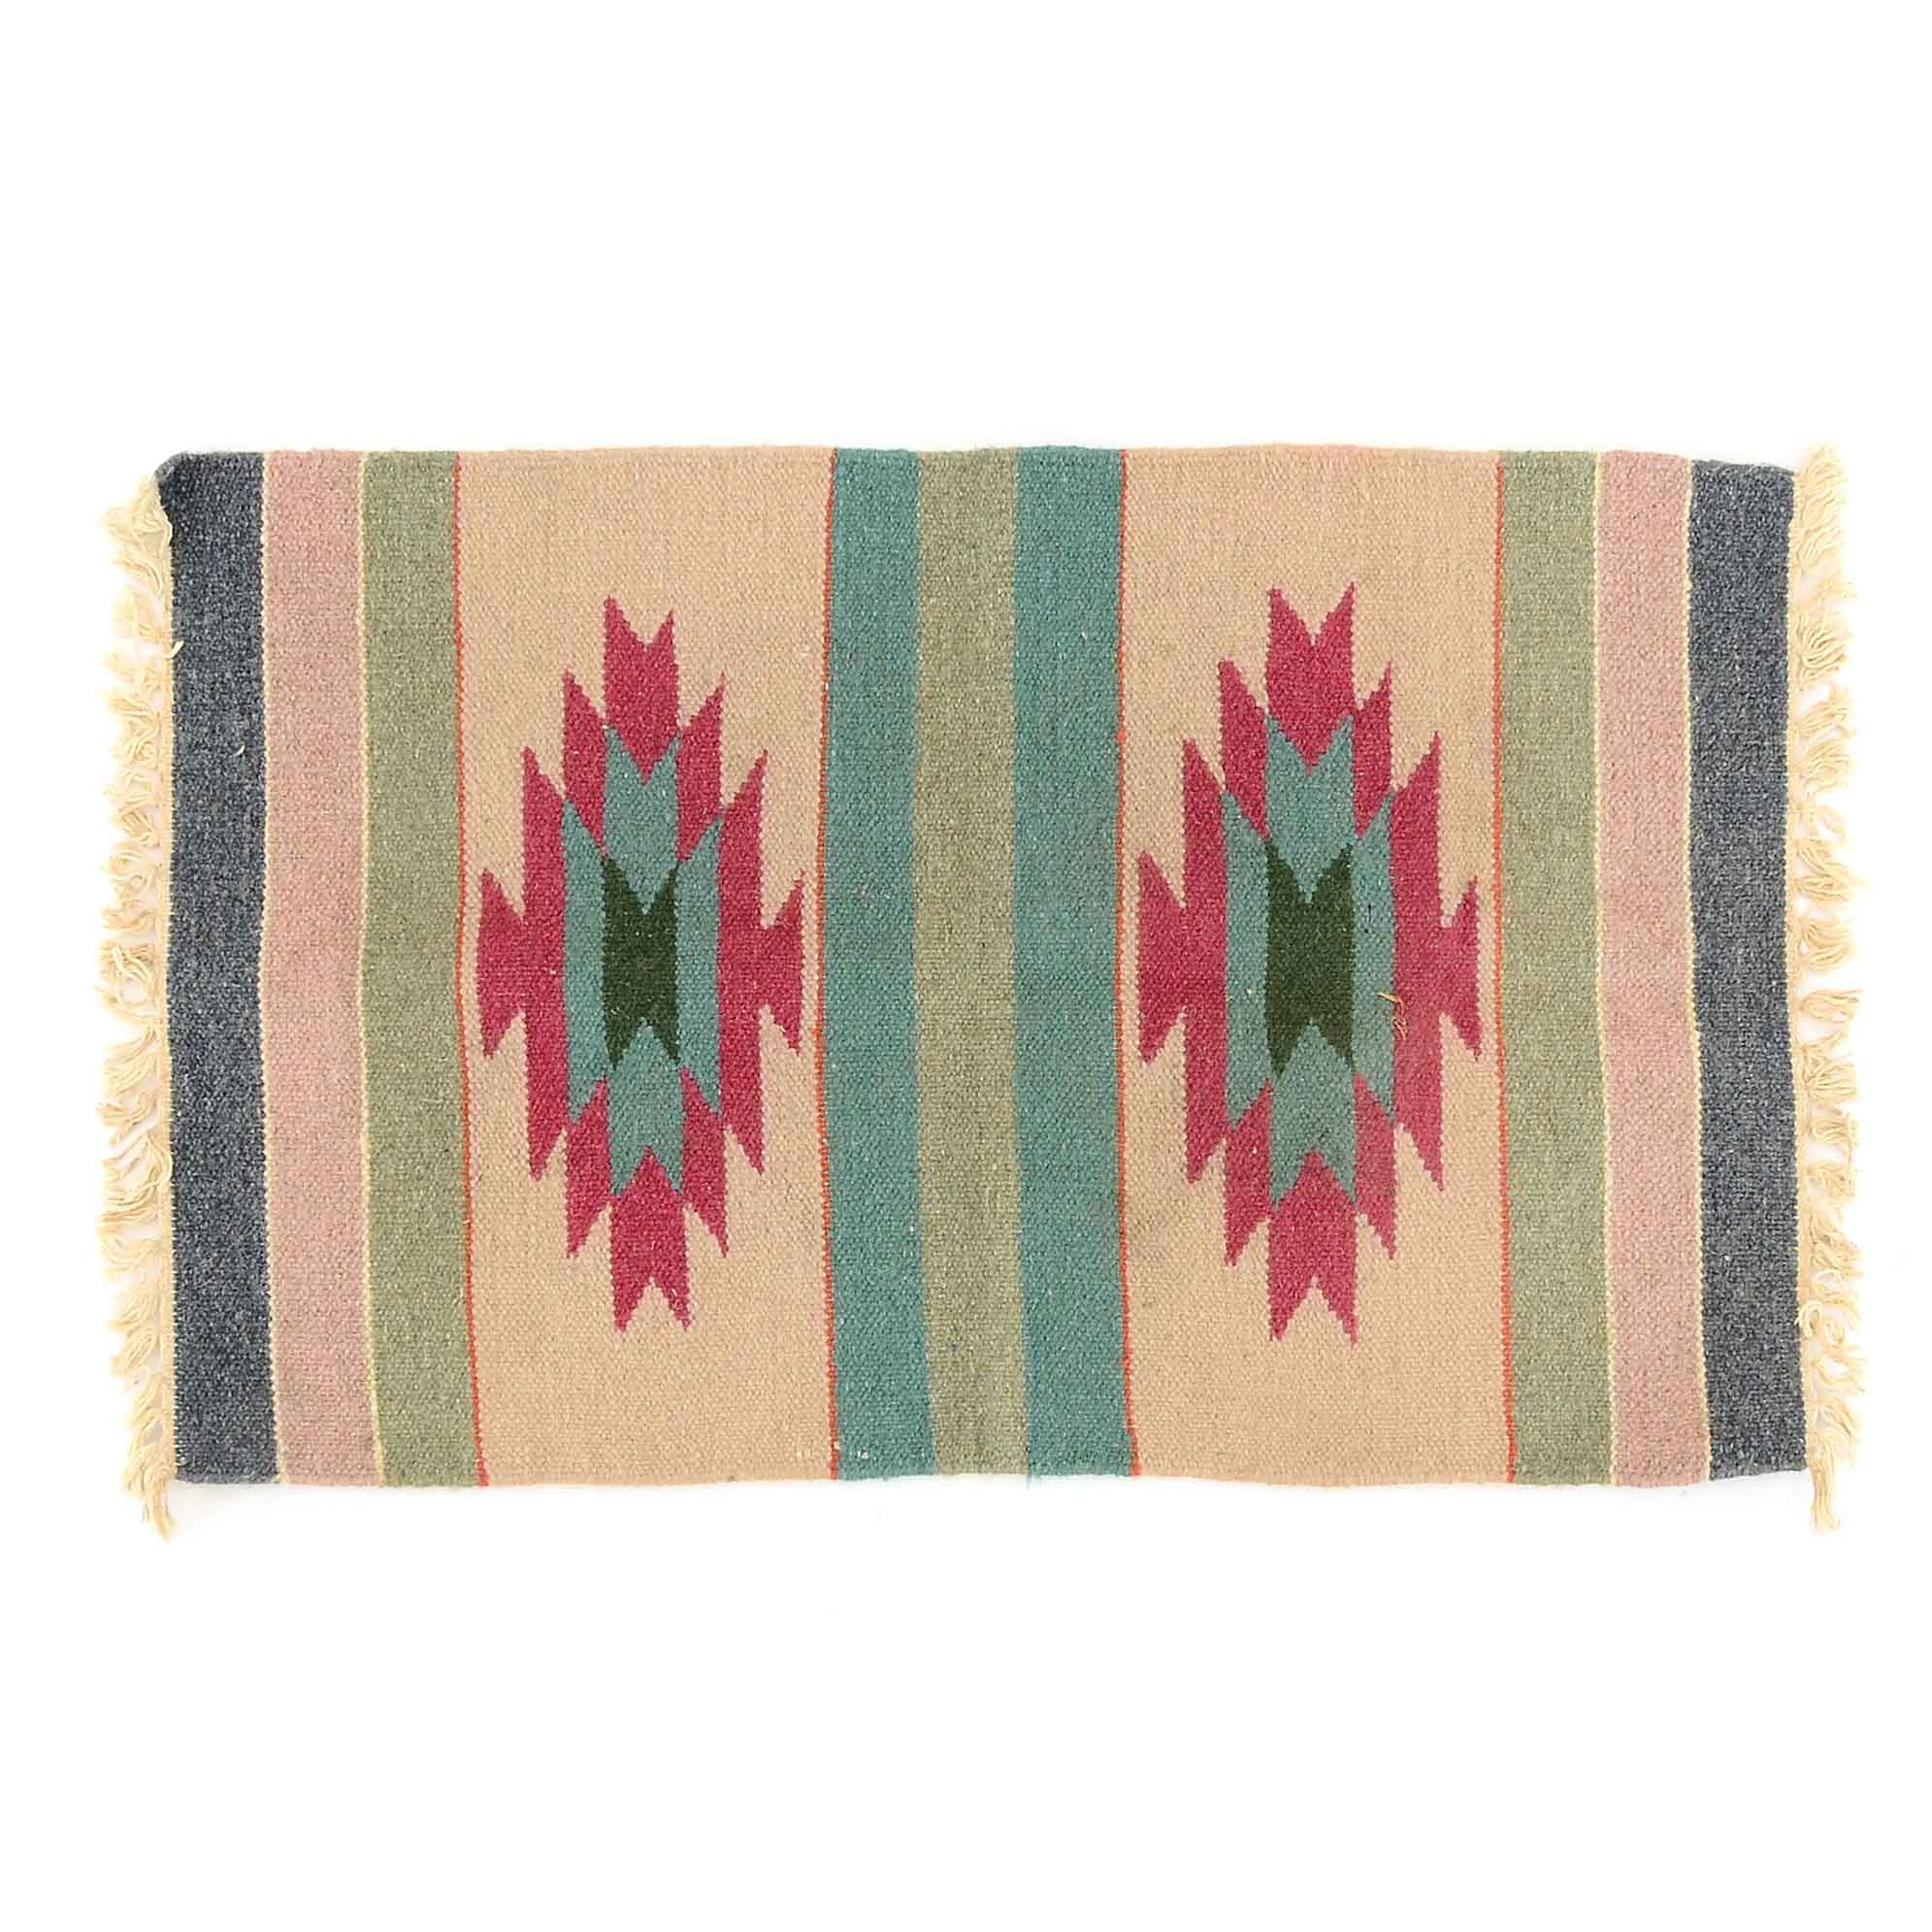 3'x2' Indian Handwoven Dhurrie Wool Accent Rug